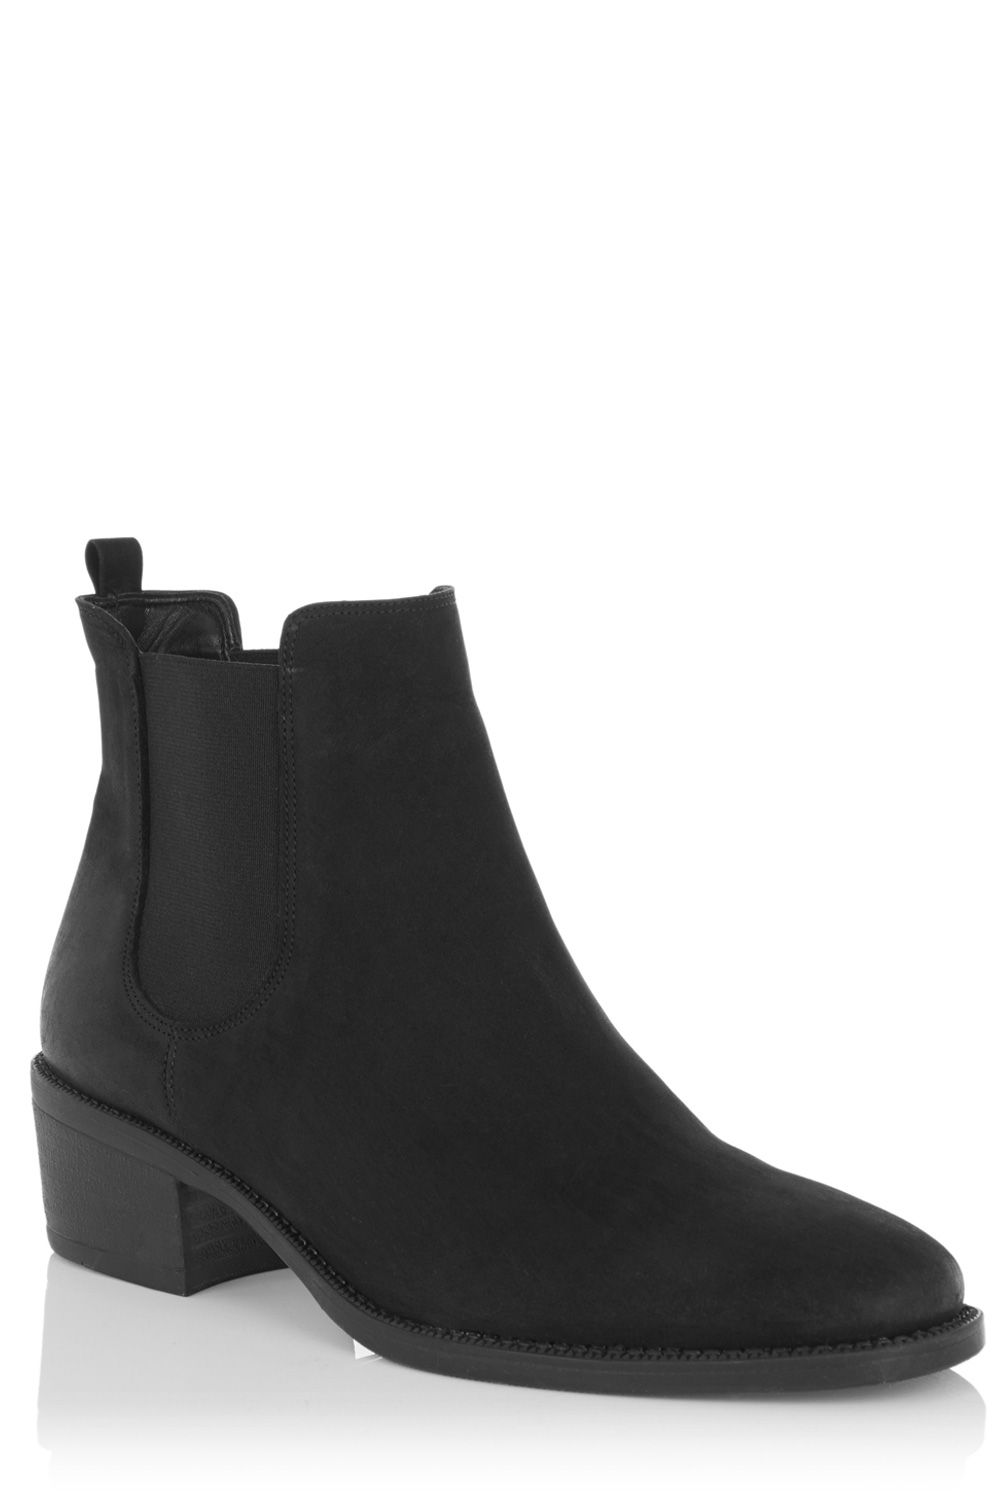 624332519bcc Camille Chelsea Boots | Black | Oasis Stores Womens Fashion Clothing Online  - Oasis Black Chelsea